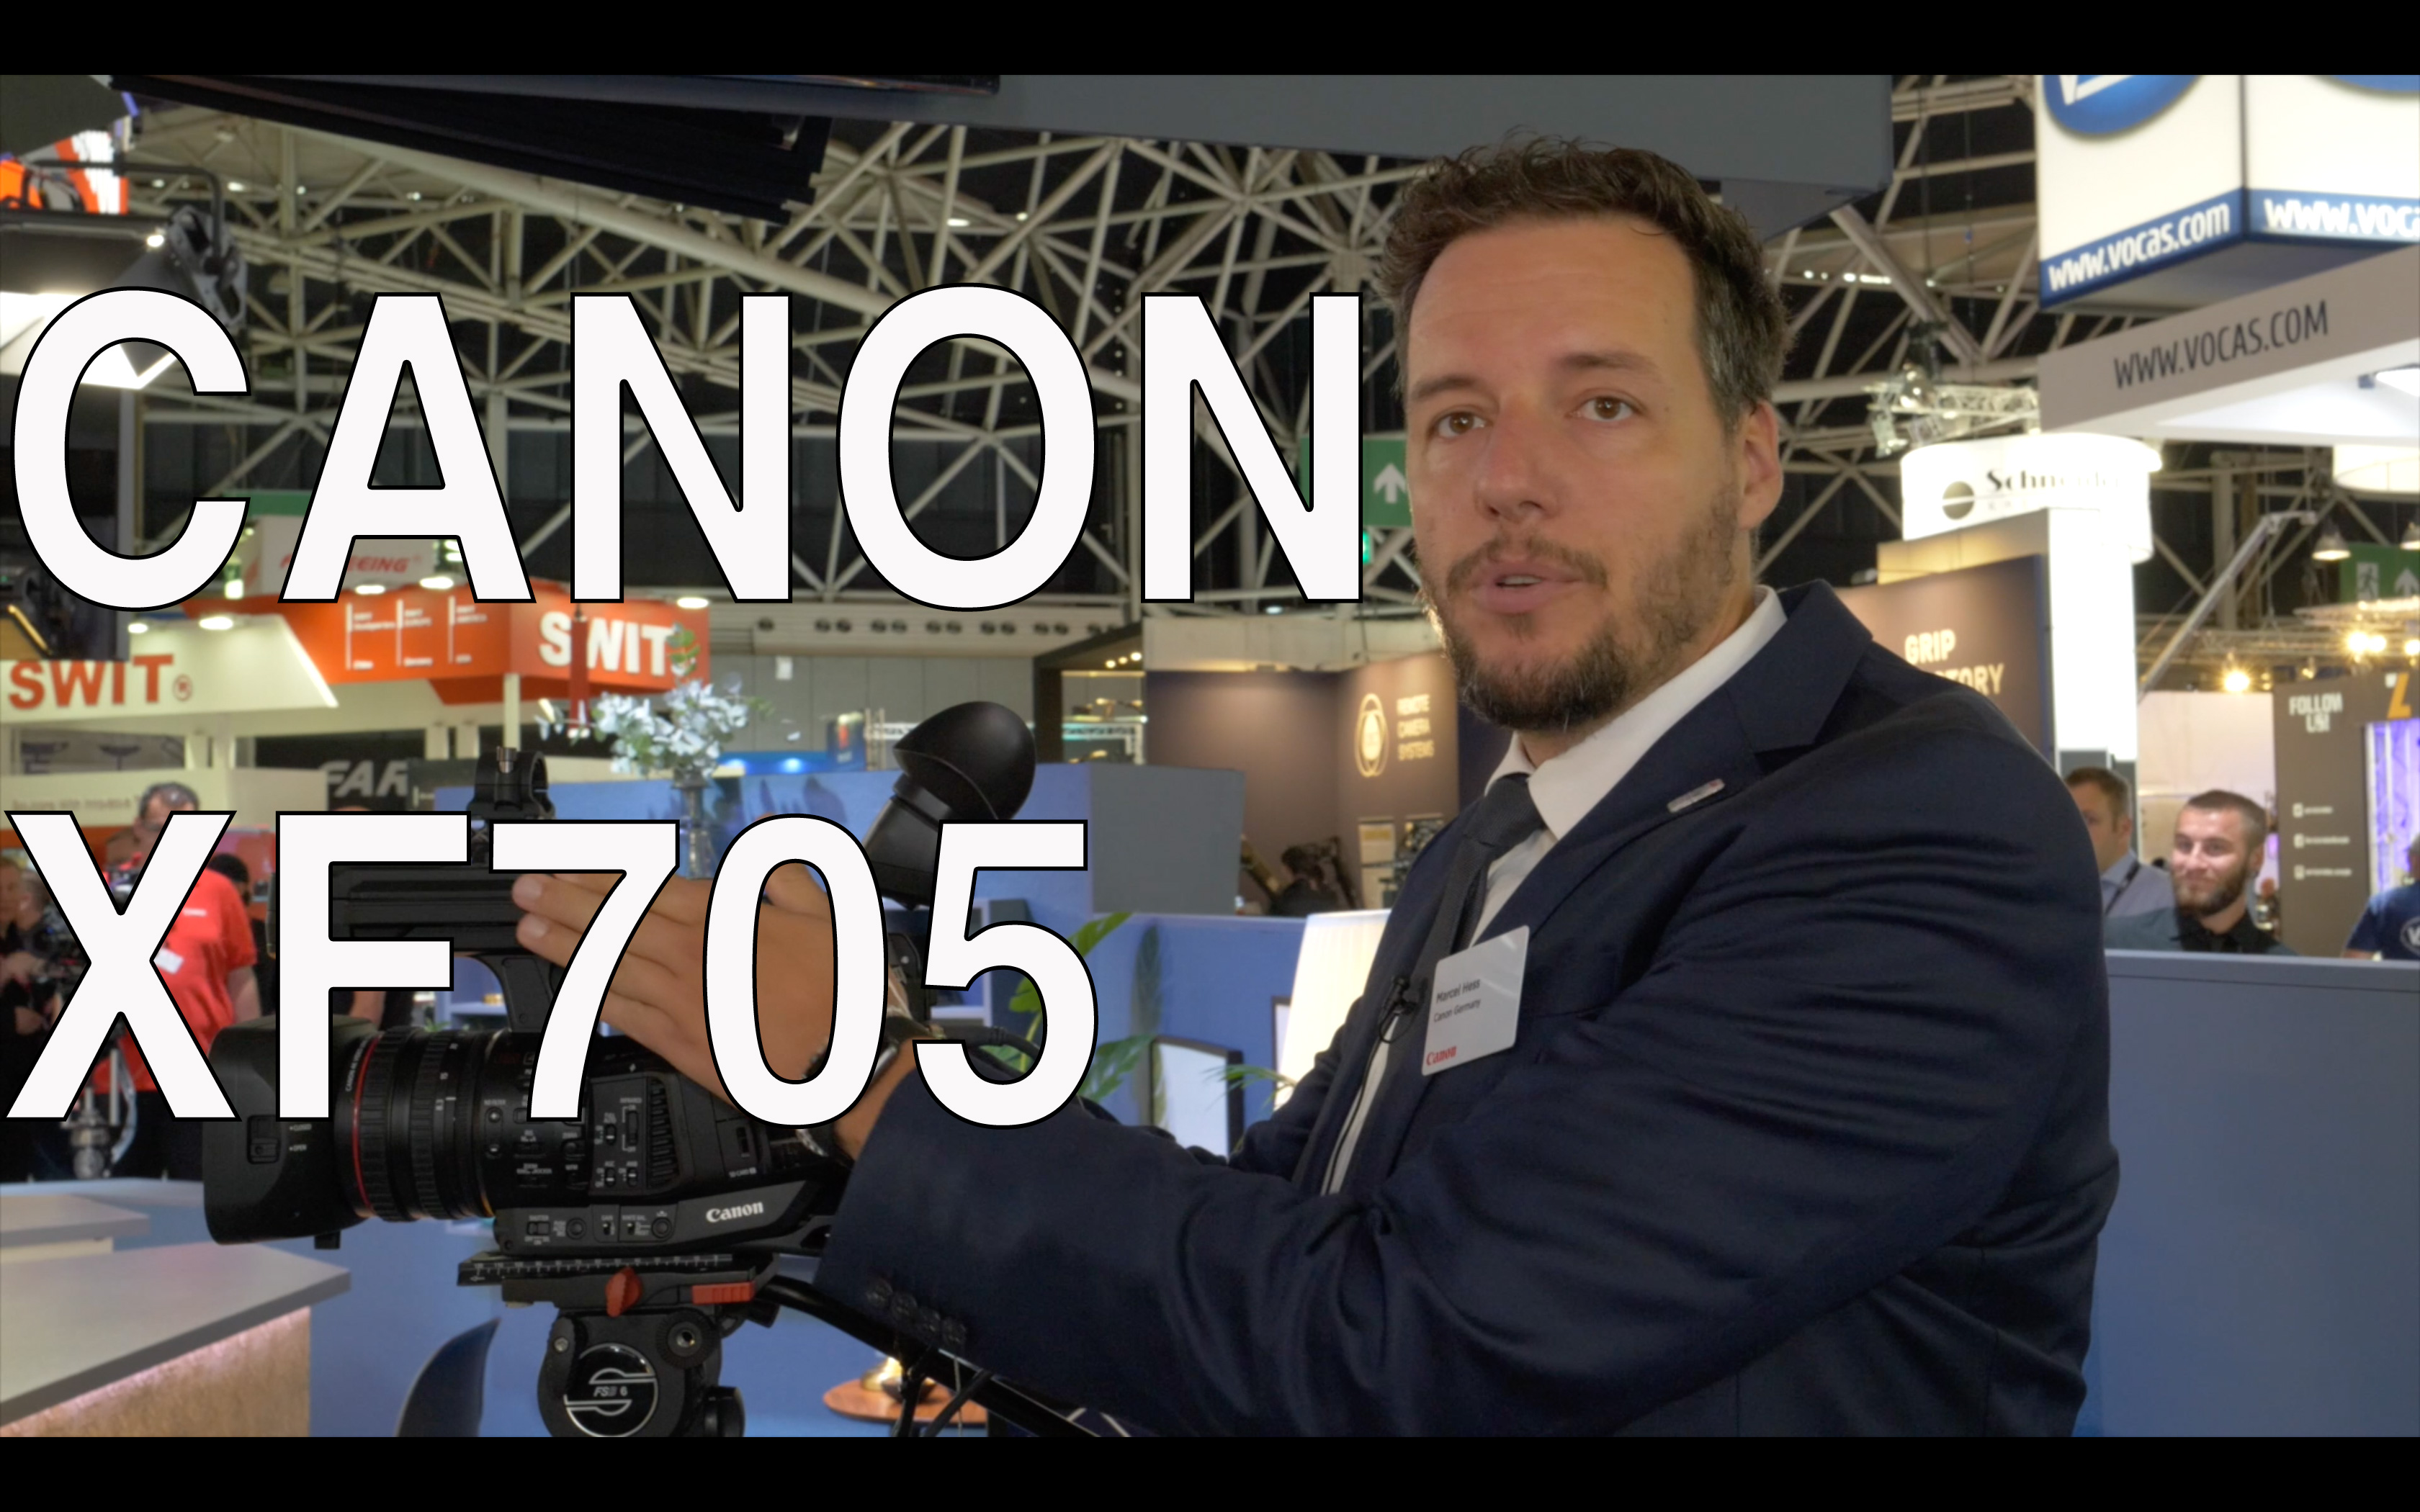 Videointerview: Canon XF705 - 10 Bit H.265, Linear Focus-by-Wire, Shoulder rest, Availability a.o. /